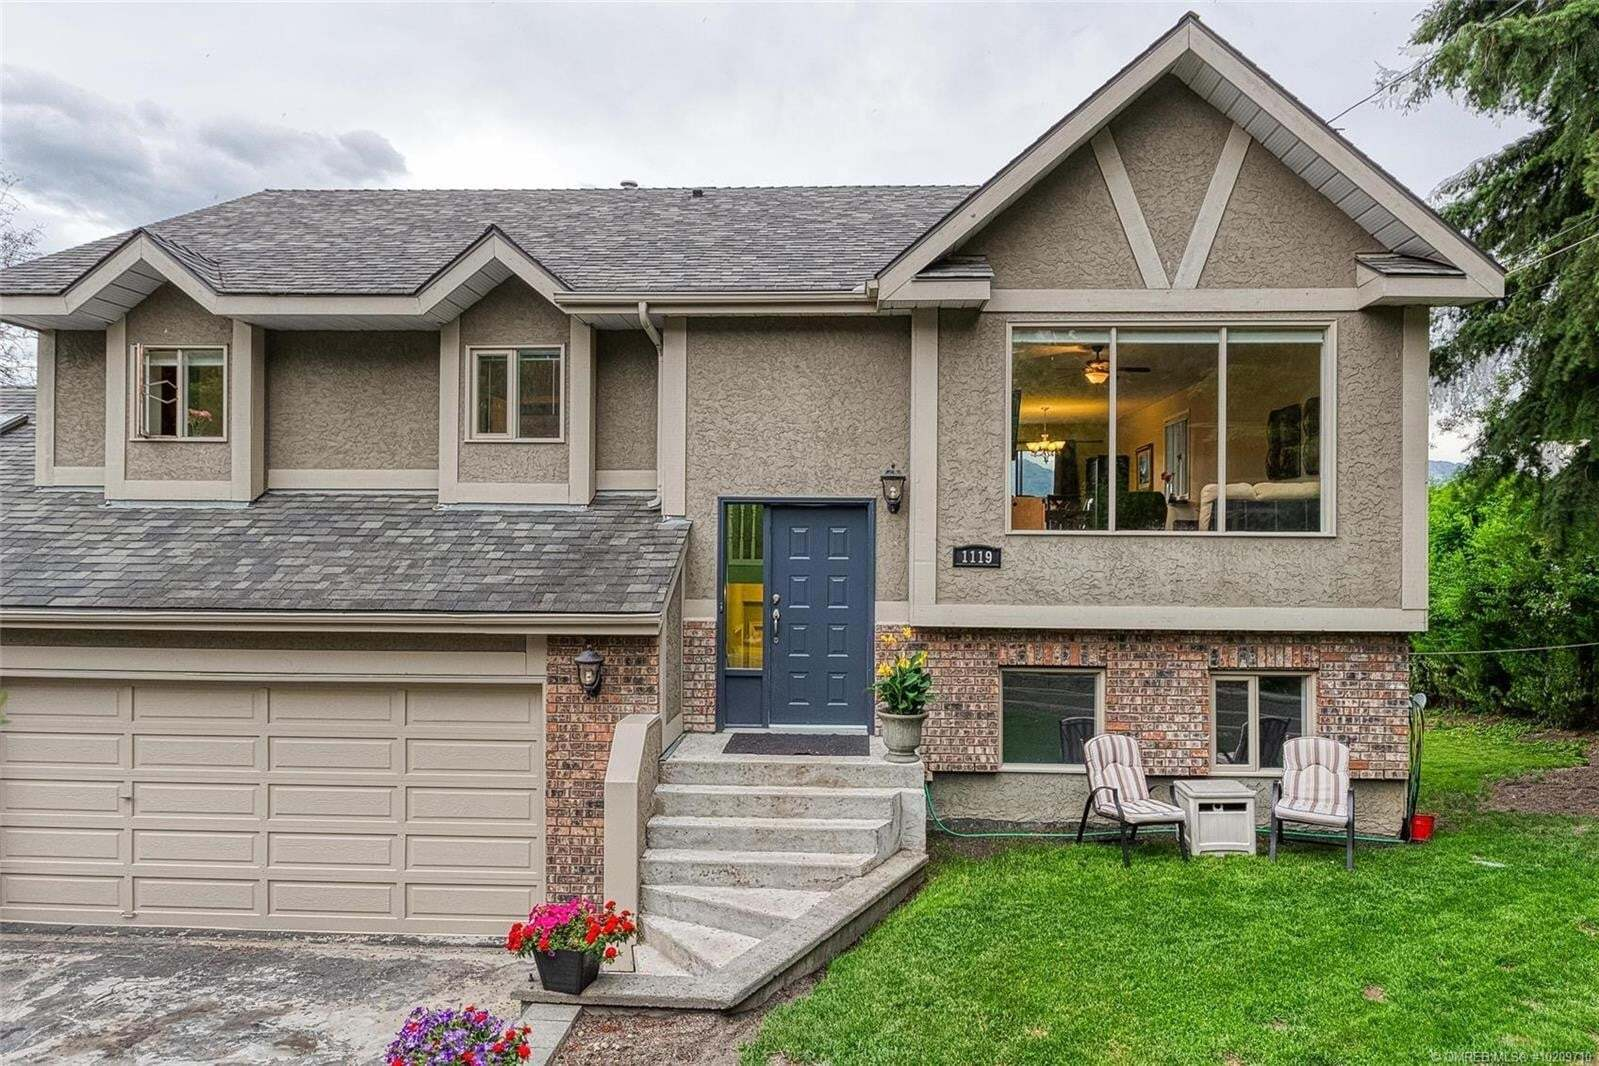 House for sale at 1119 Gregory Rd West Kelowna British Columbia - MLS: 10209710